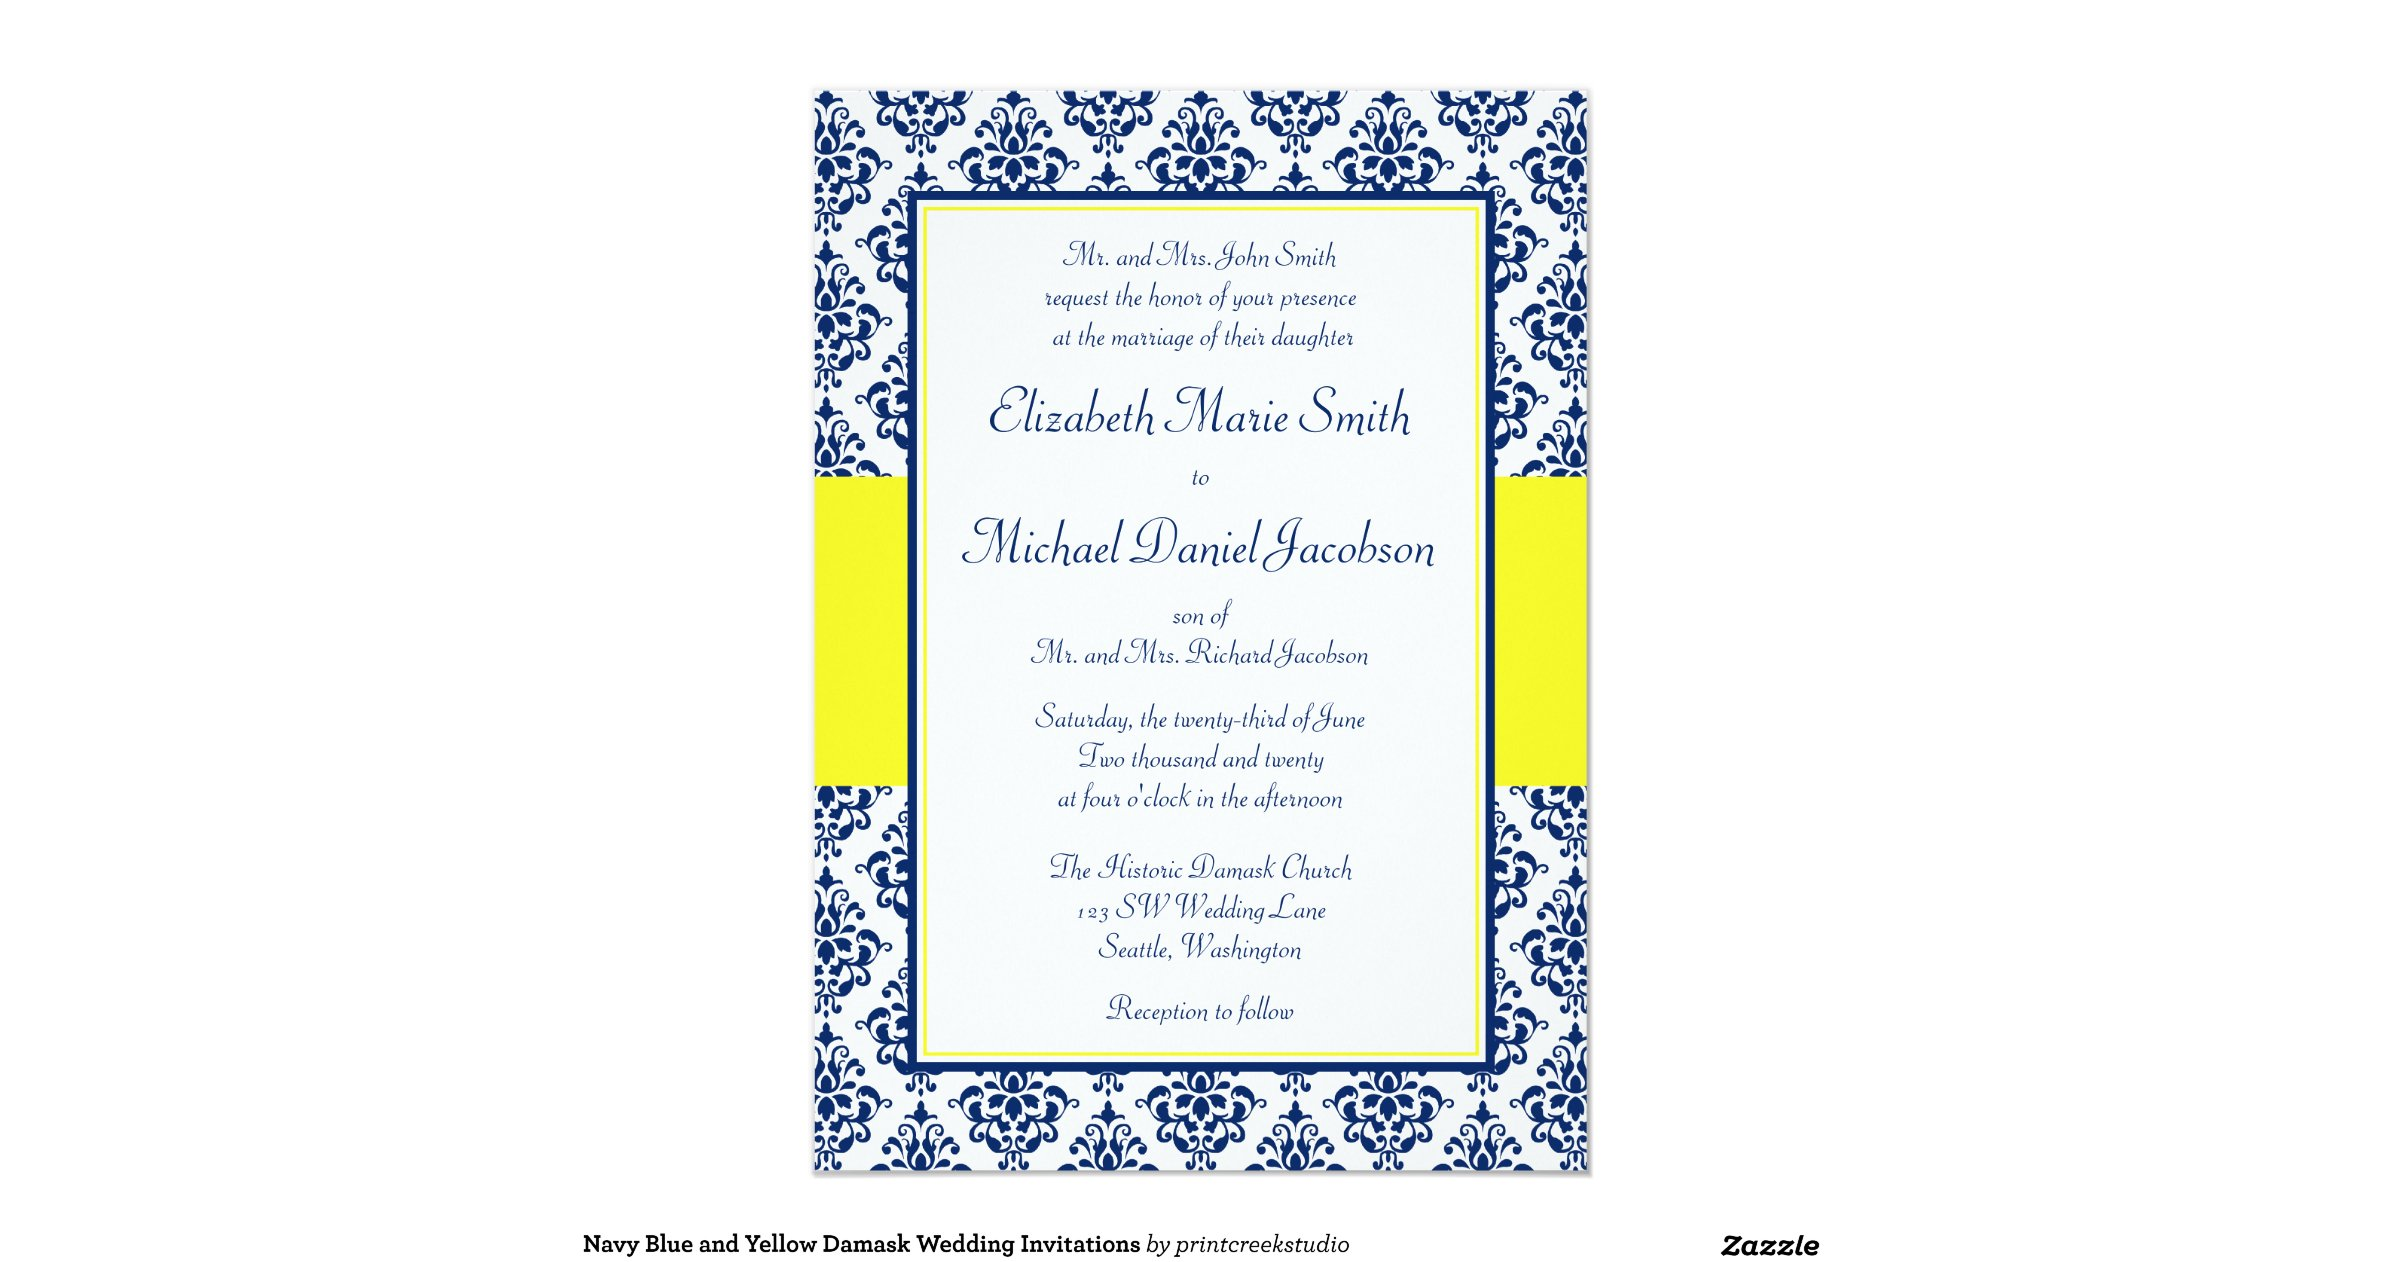 Blue And Yellow Wedding Invitations: Navy_blue_and_yellow_damask_wedding_invitations